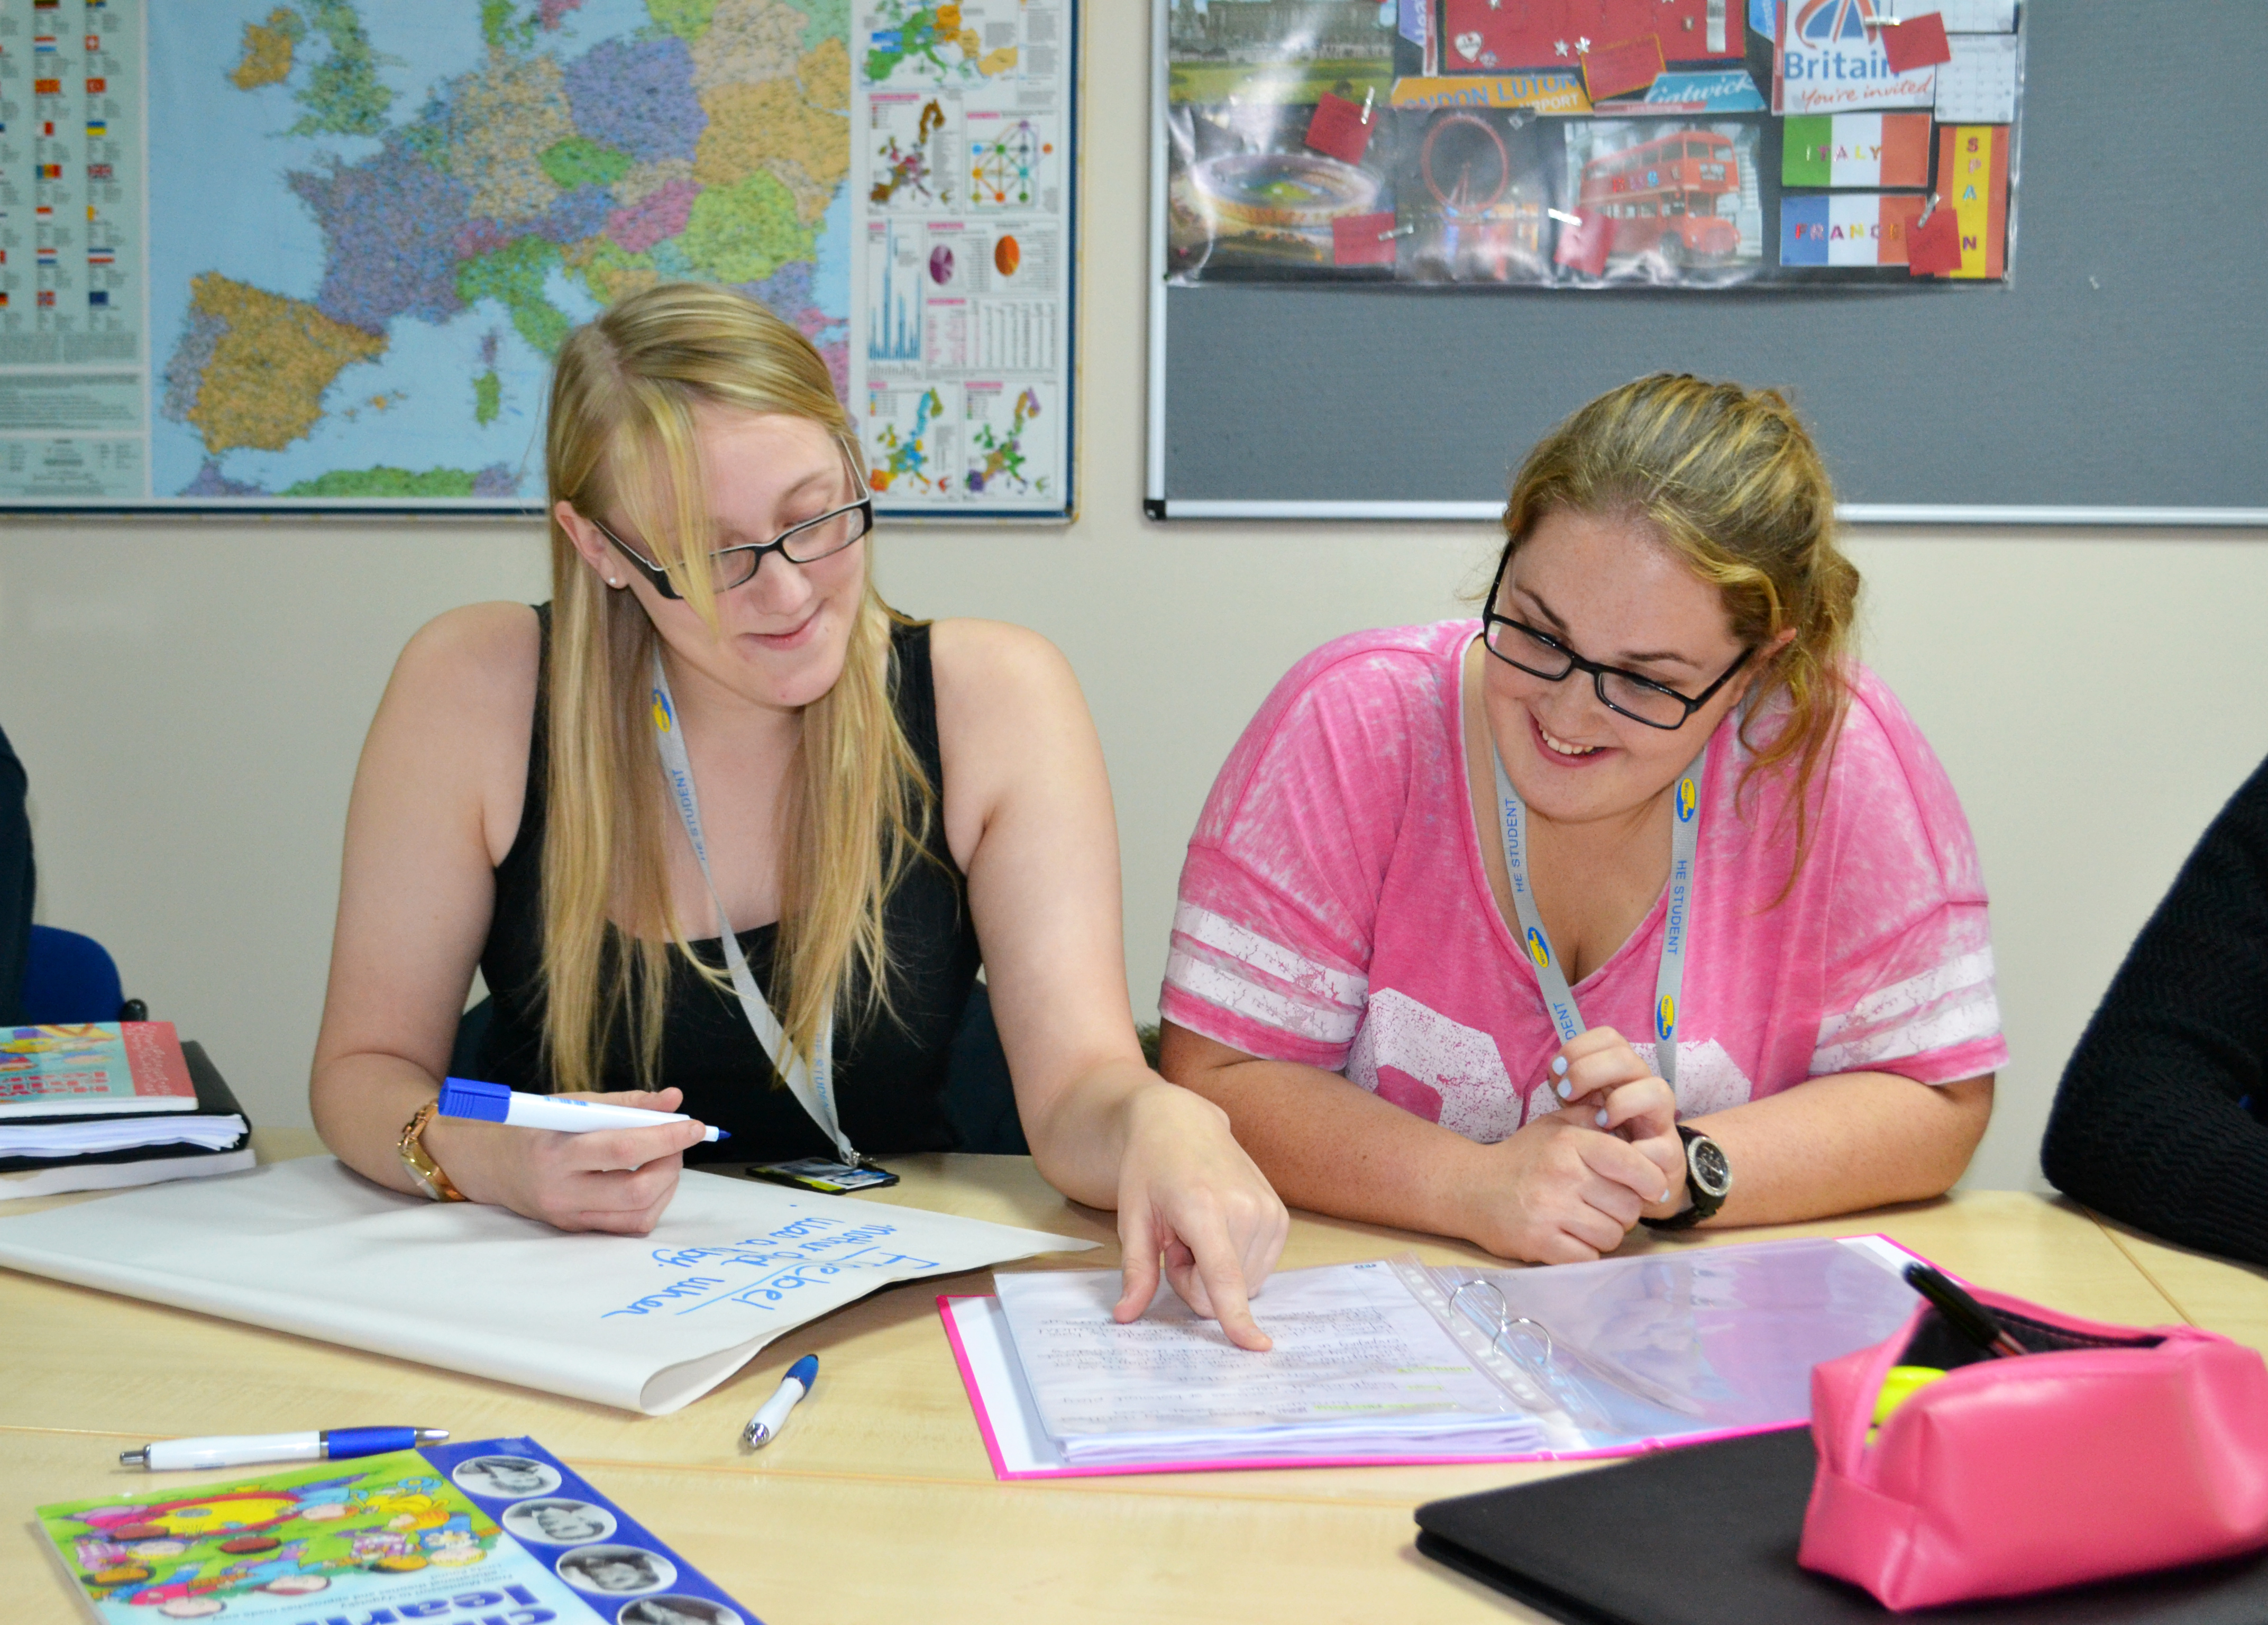 Study zone wirral met conway park courses